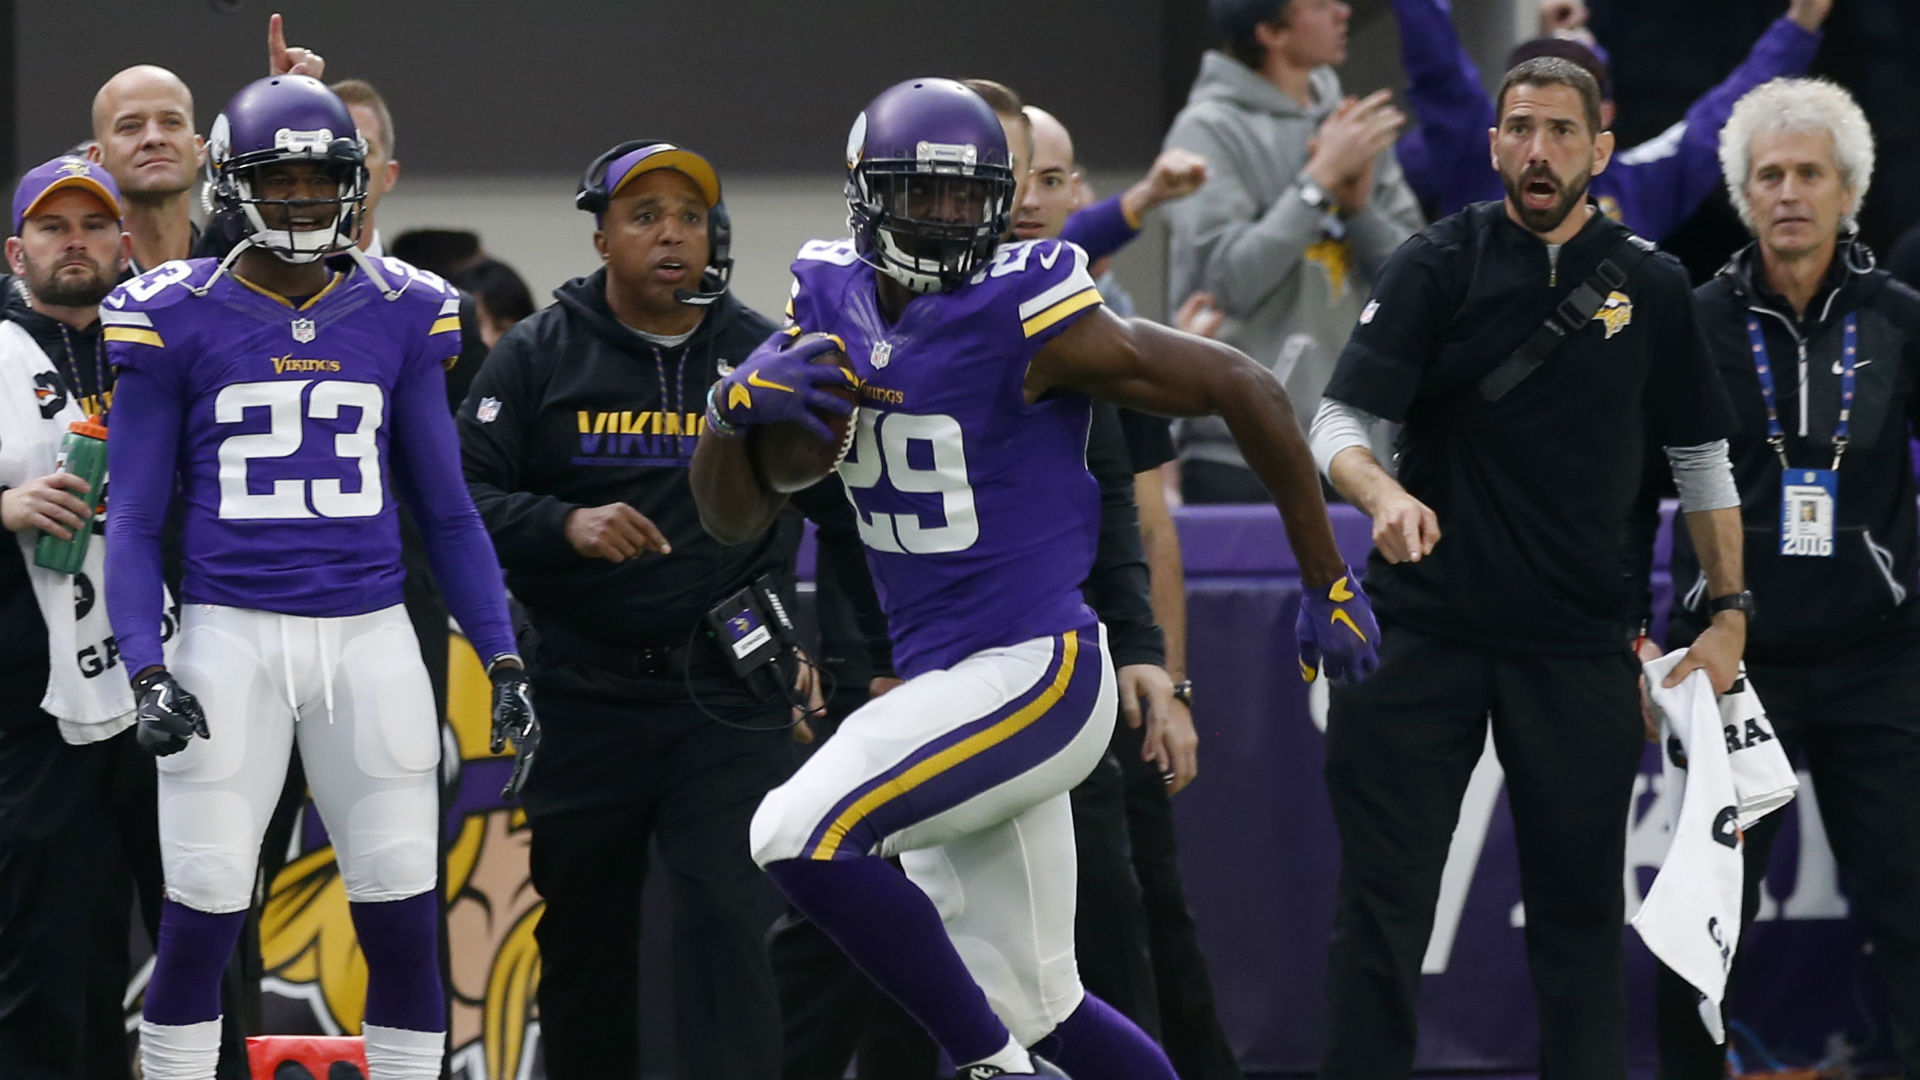 Xavier Rhodes sets Vikings franchise record with 100 yard